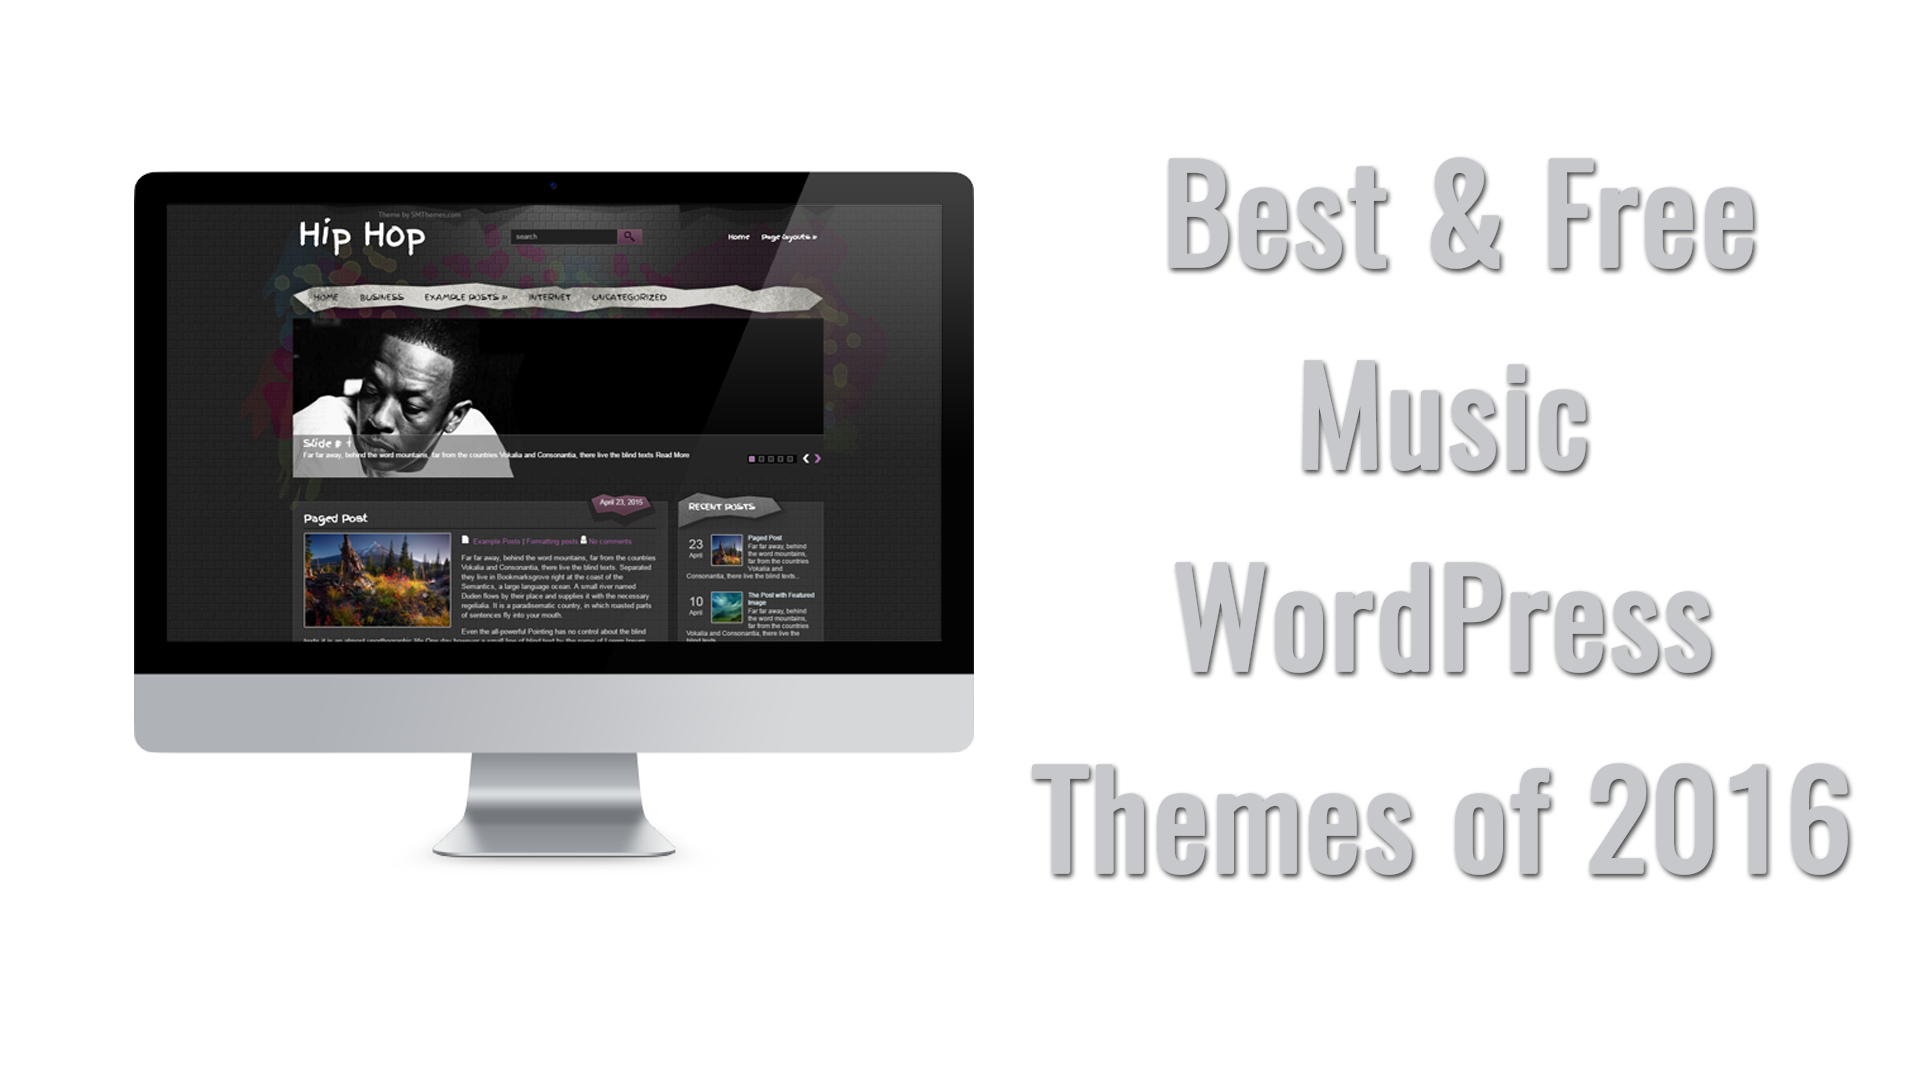 Top 7 Music Free WordPress Themes 2016